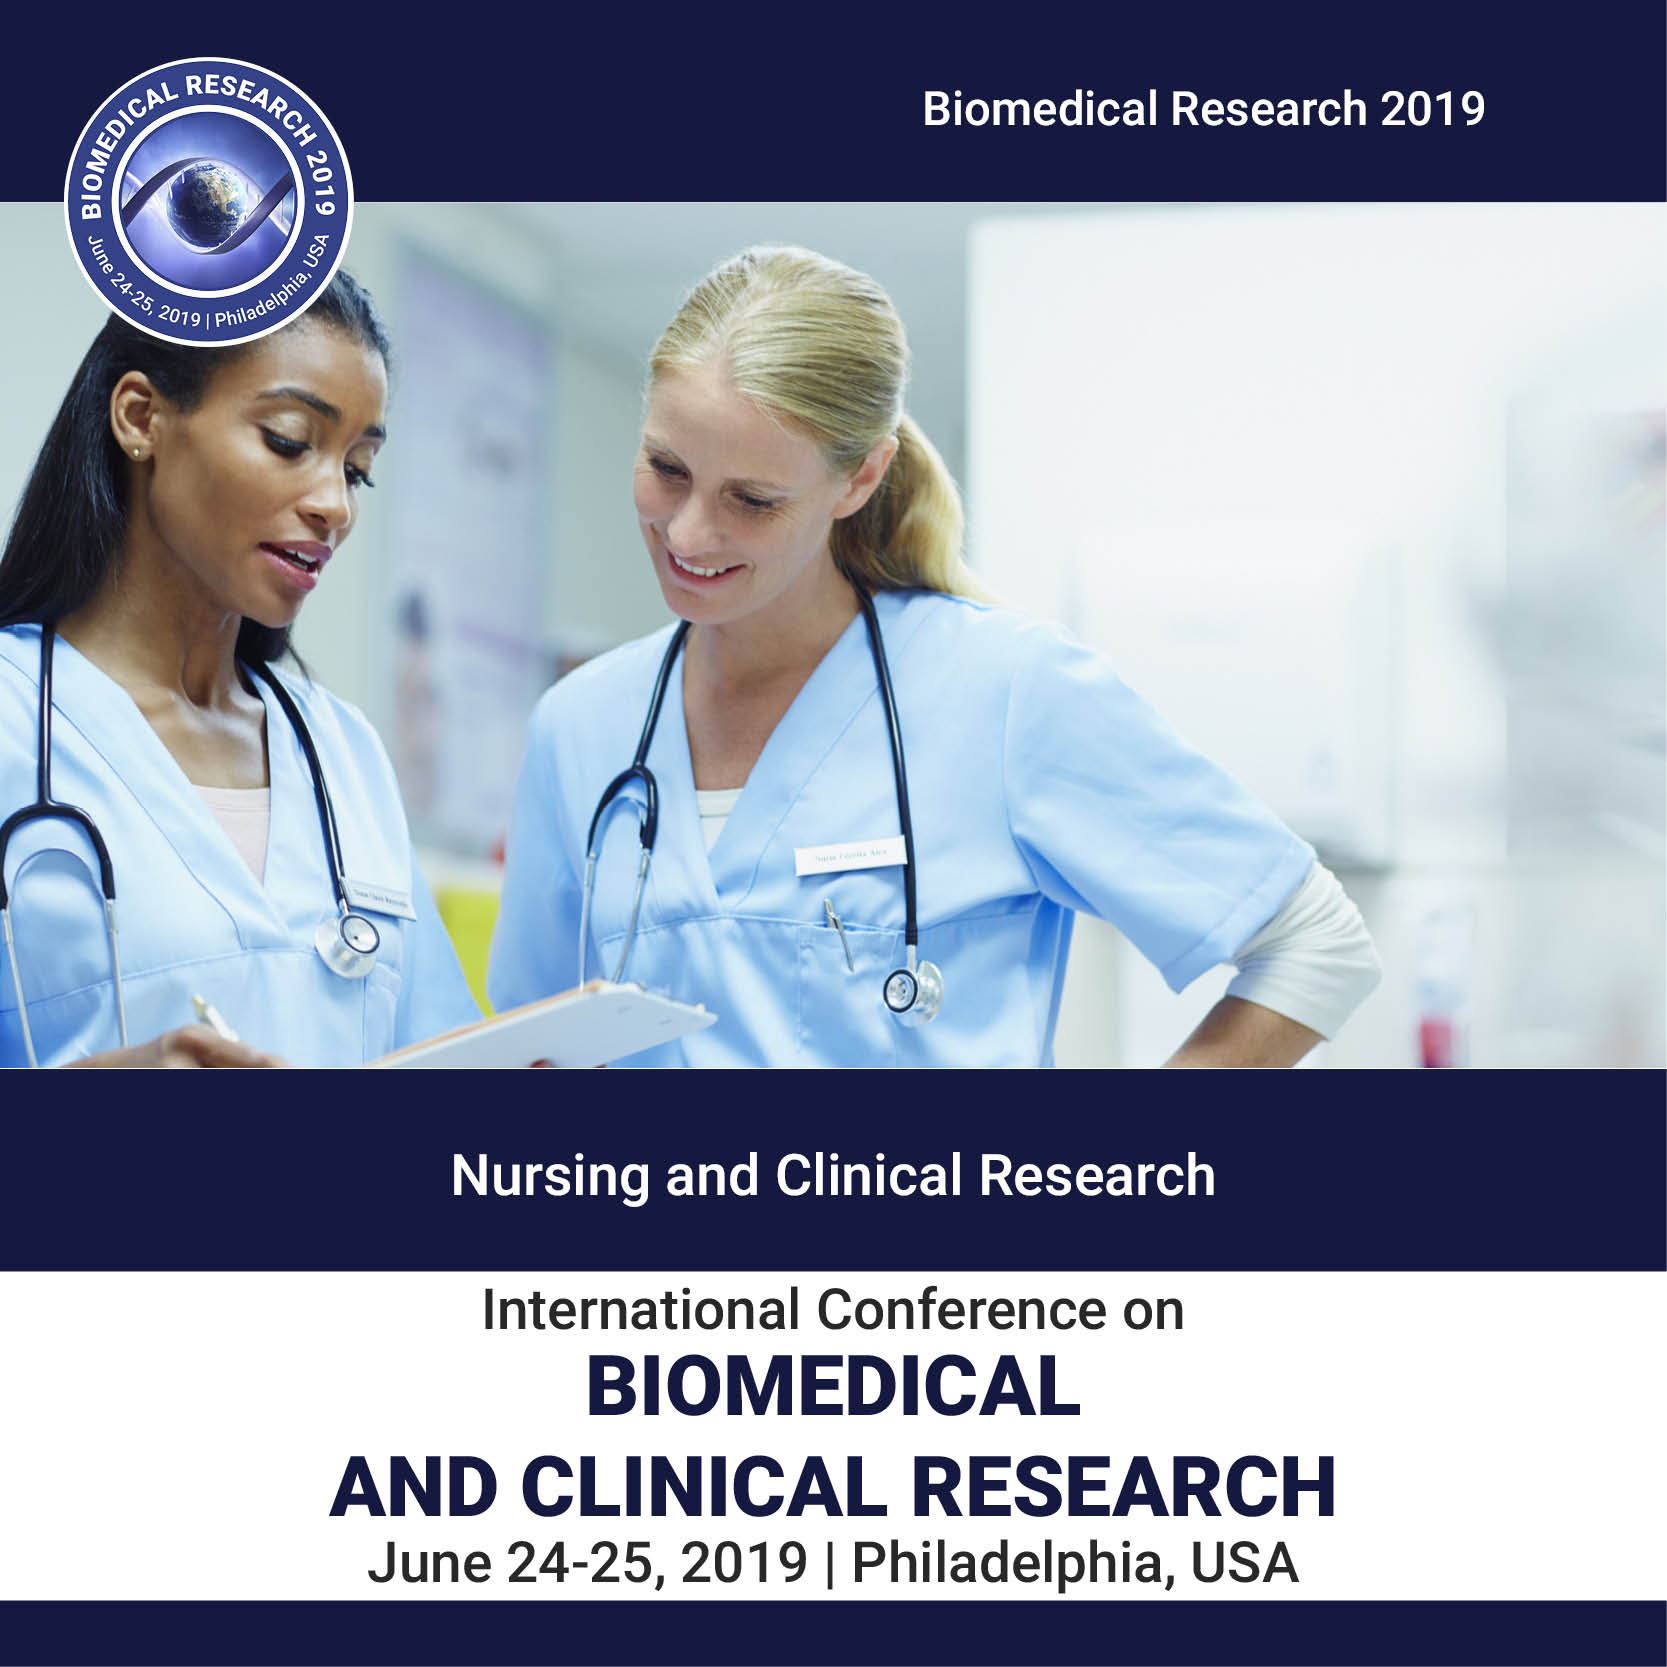 Nursing and Clinical Research Photo